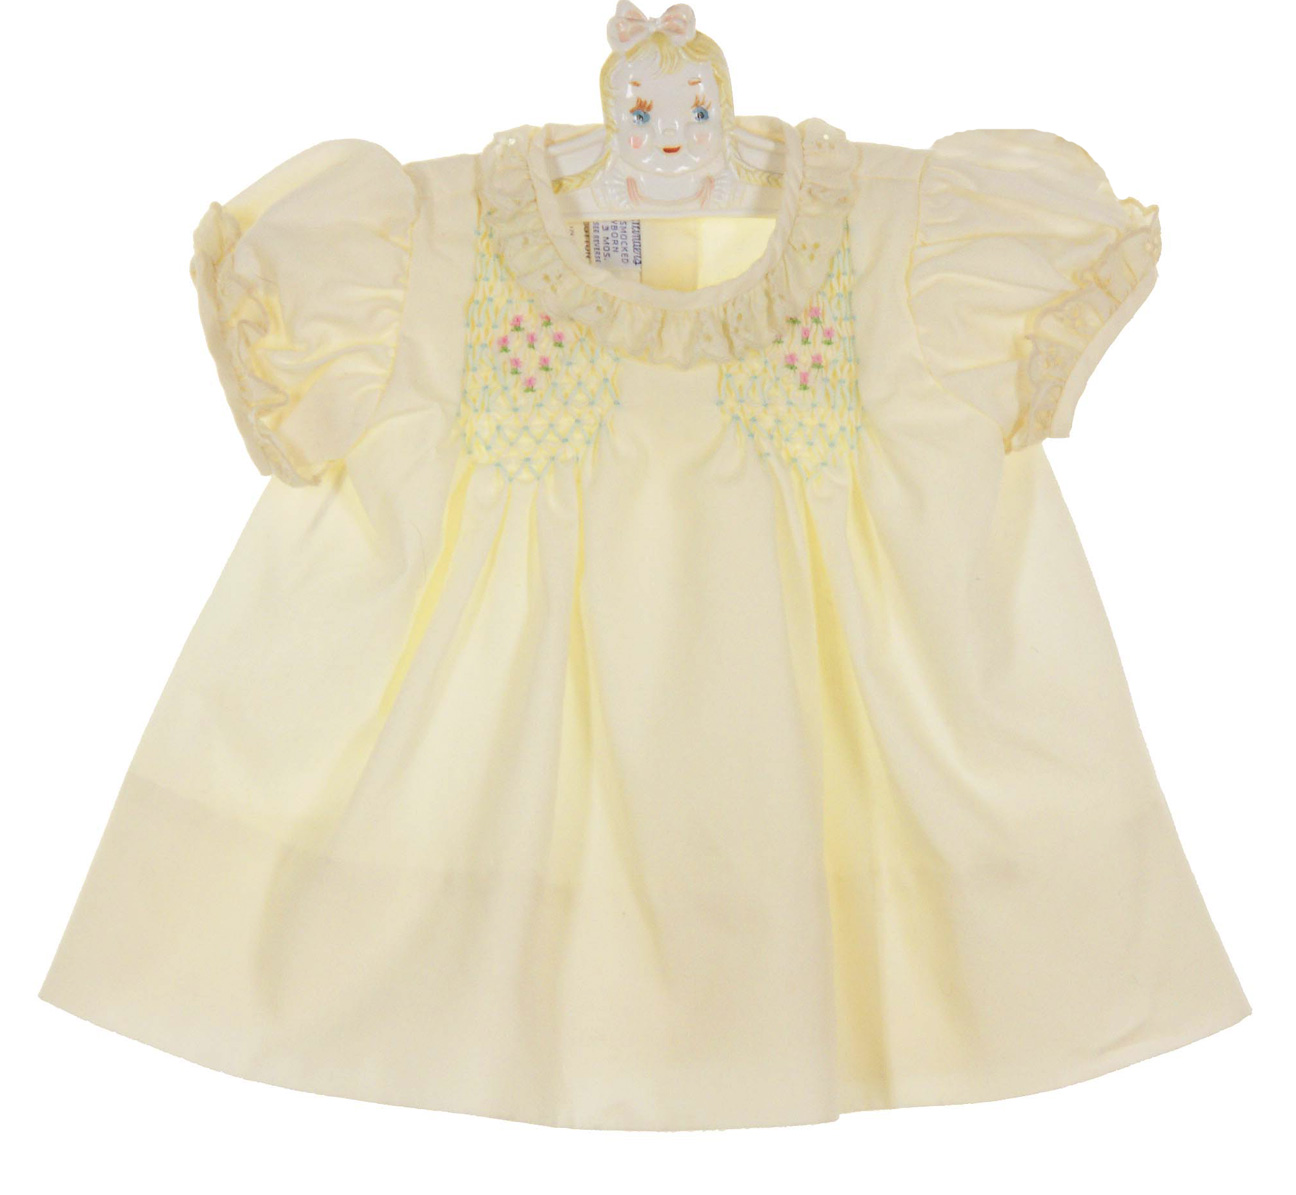 00e0a4712 NEW Polly Flinders Palest Yellow Smocked Dress